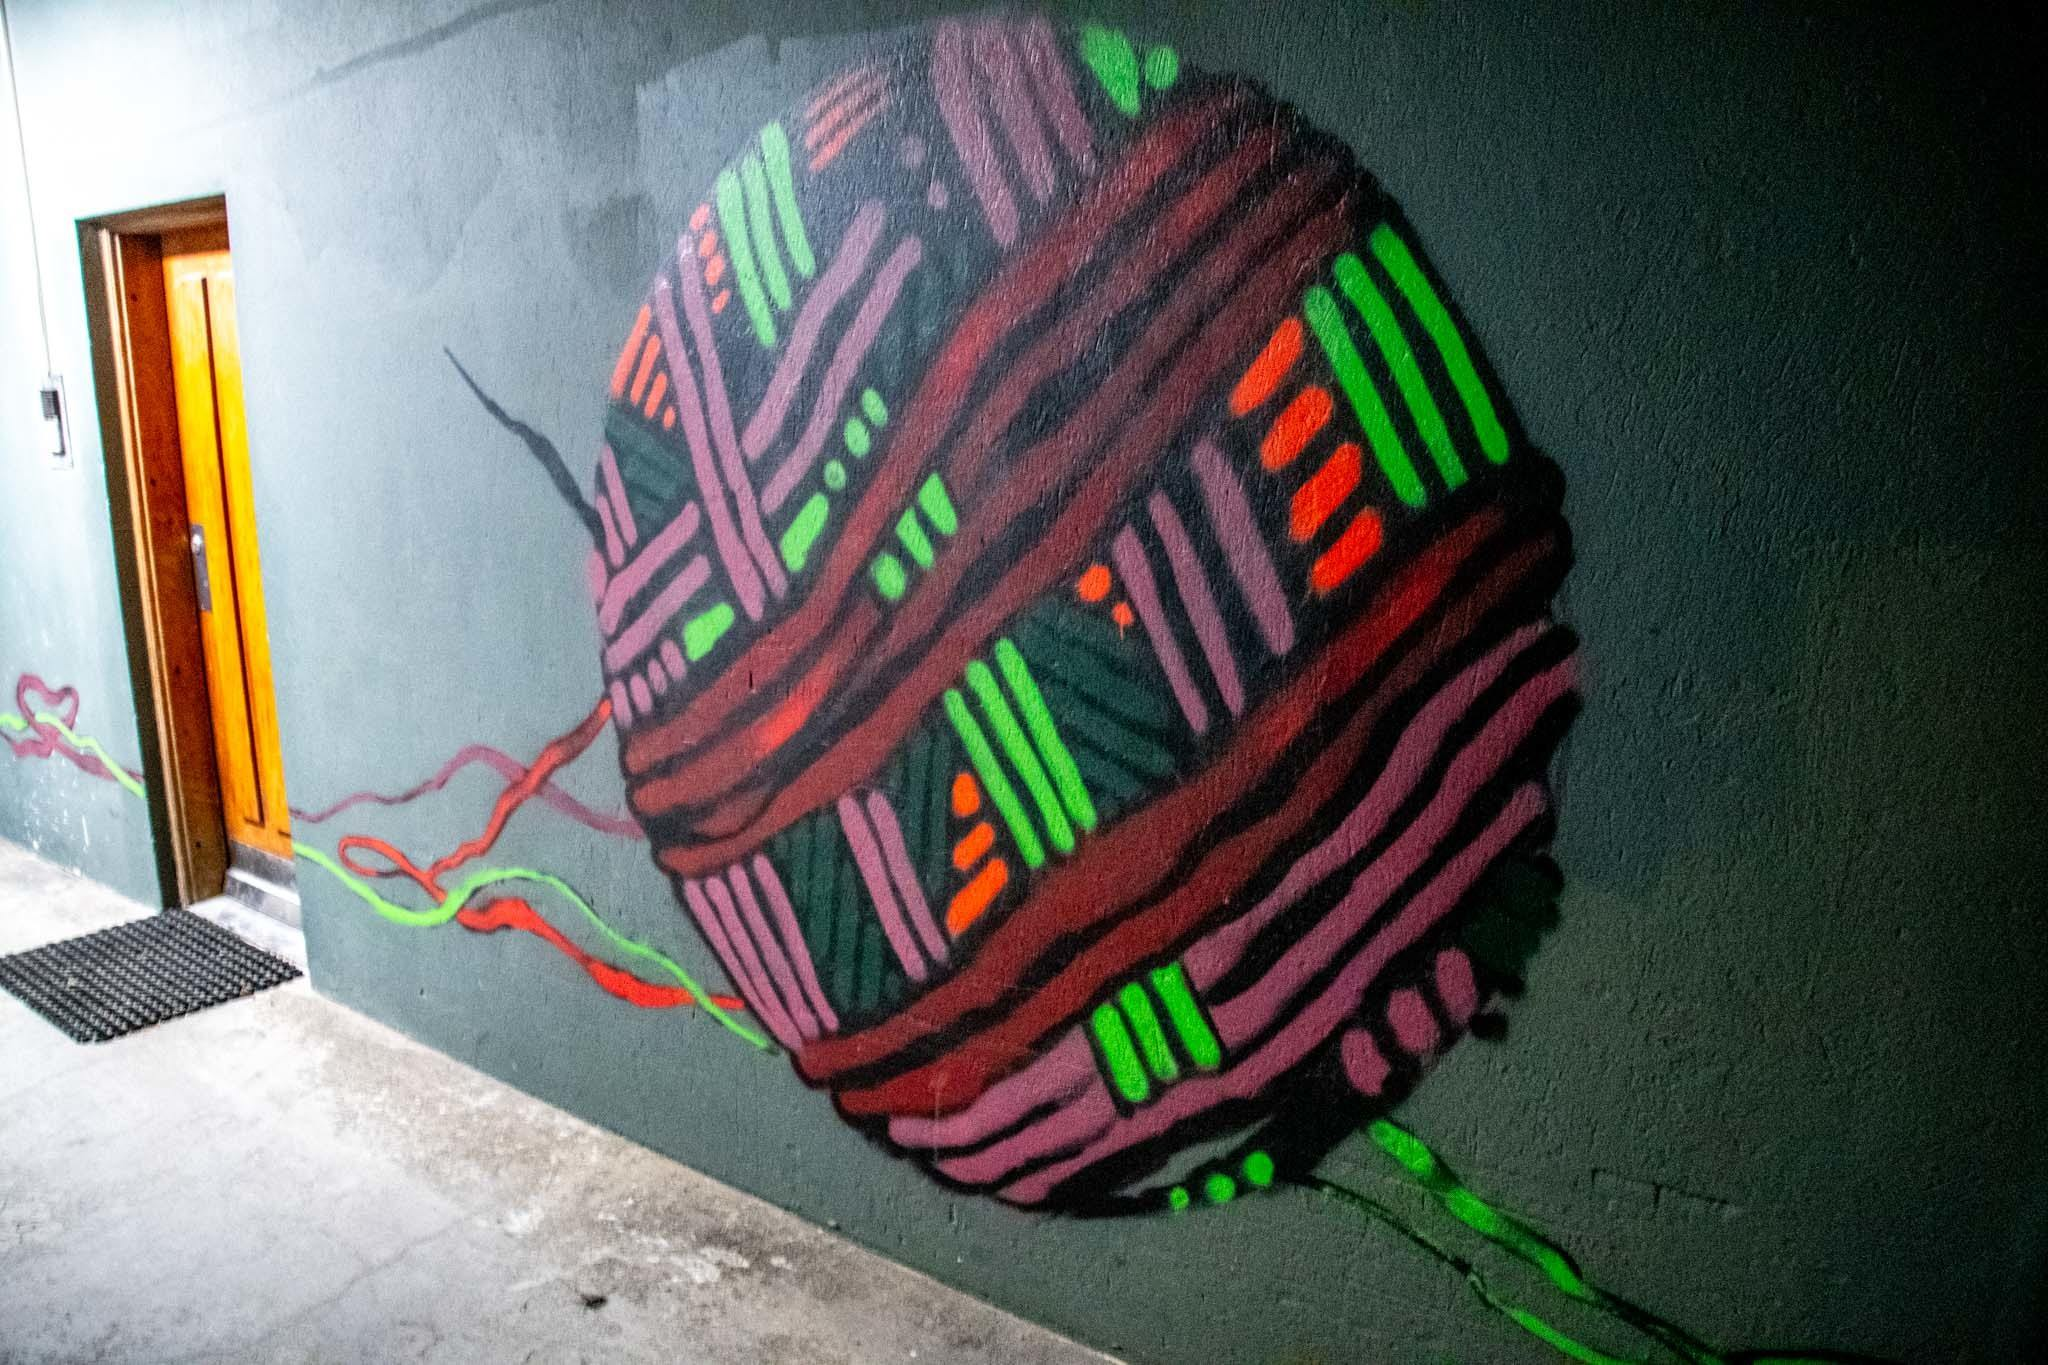 The ball of string is part of a two-part opposing mural